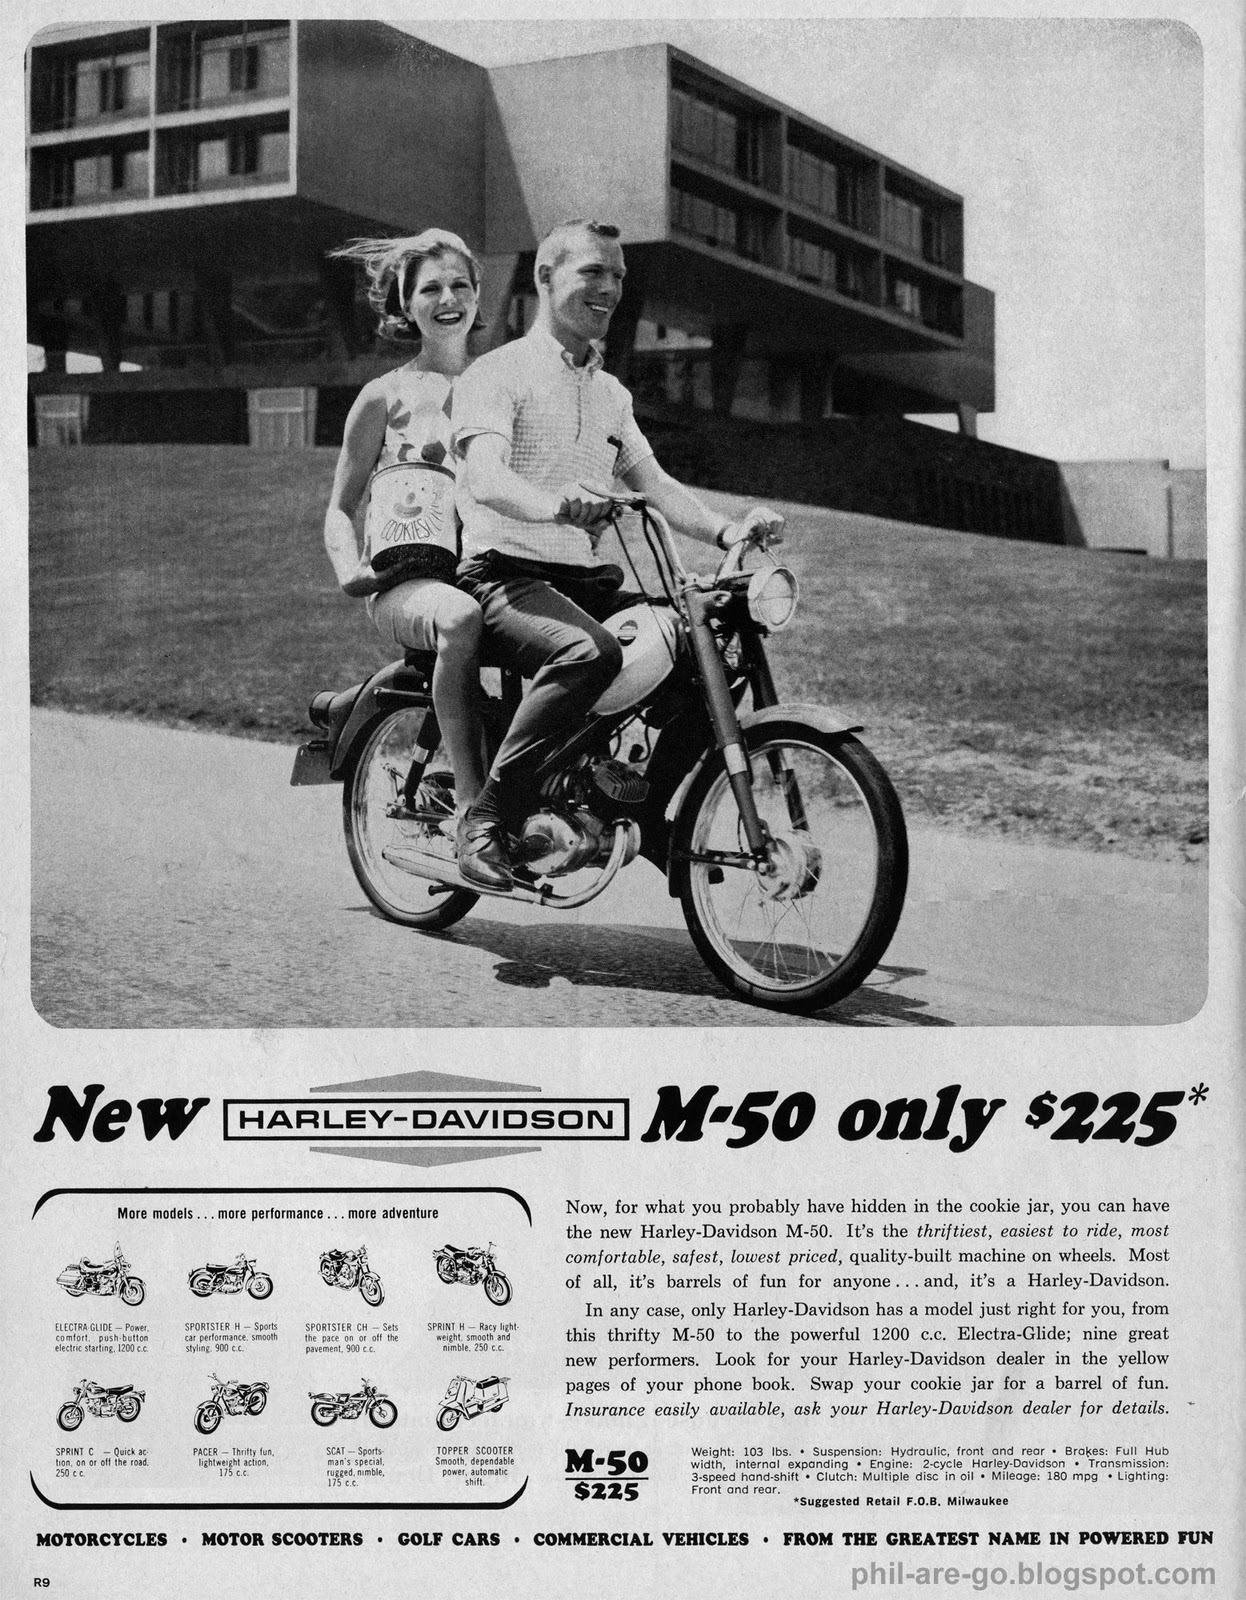 Phil Are Go!: Harley Davidson M-50 - The fake Mac of motorcycles.